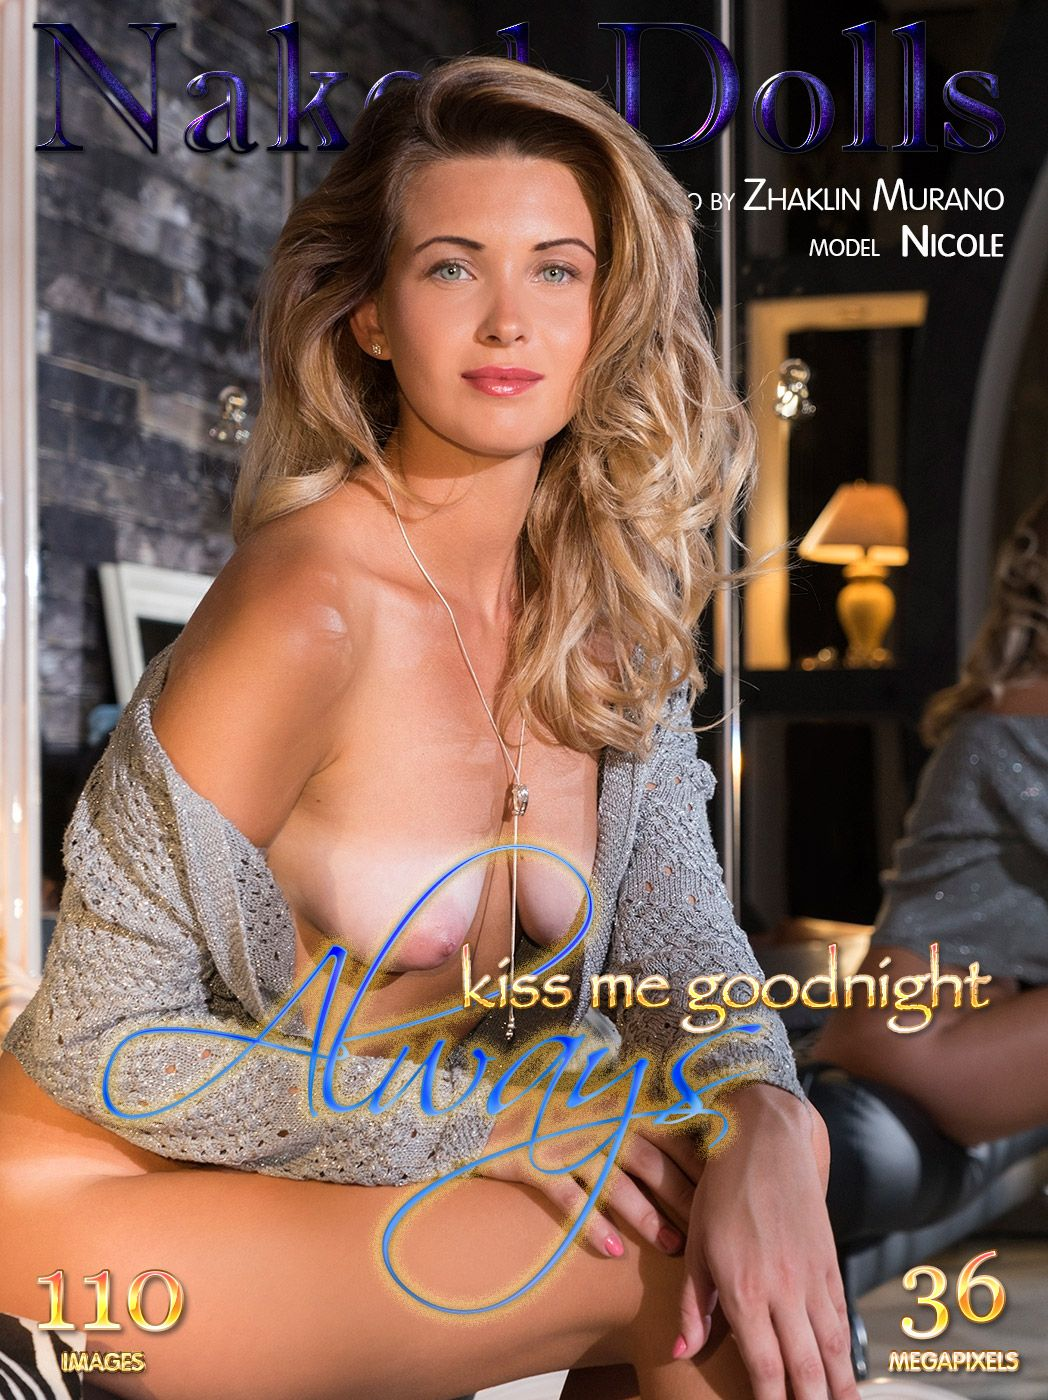 Nicole - ALWAYS KISS ME GOODNIGHT 13